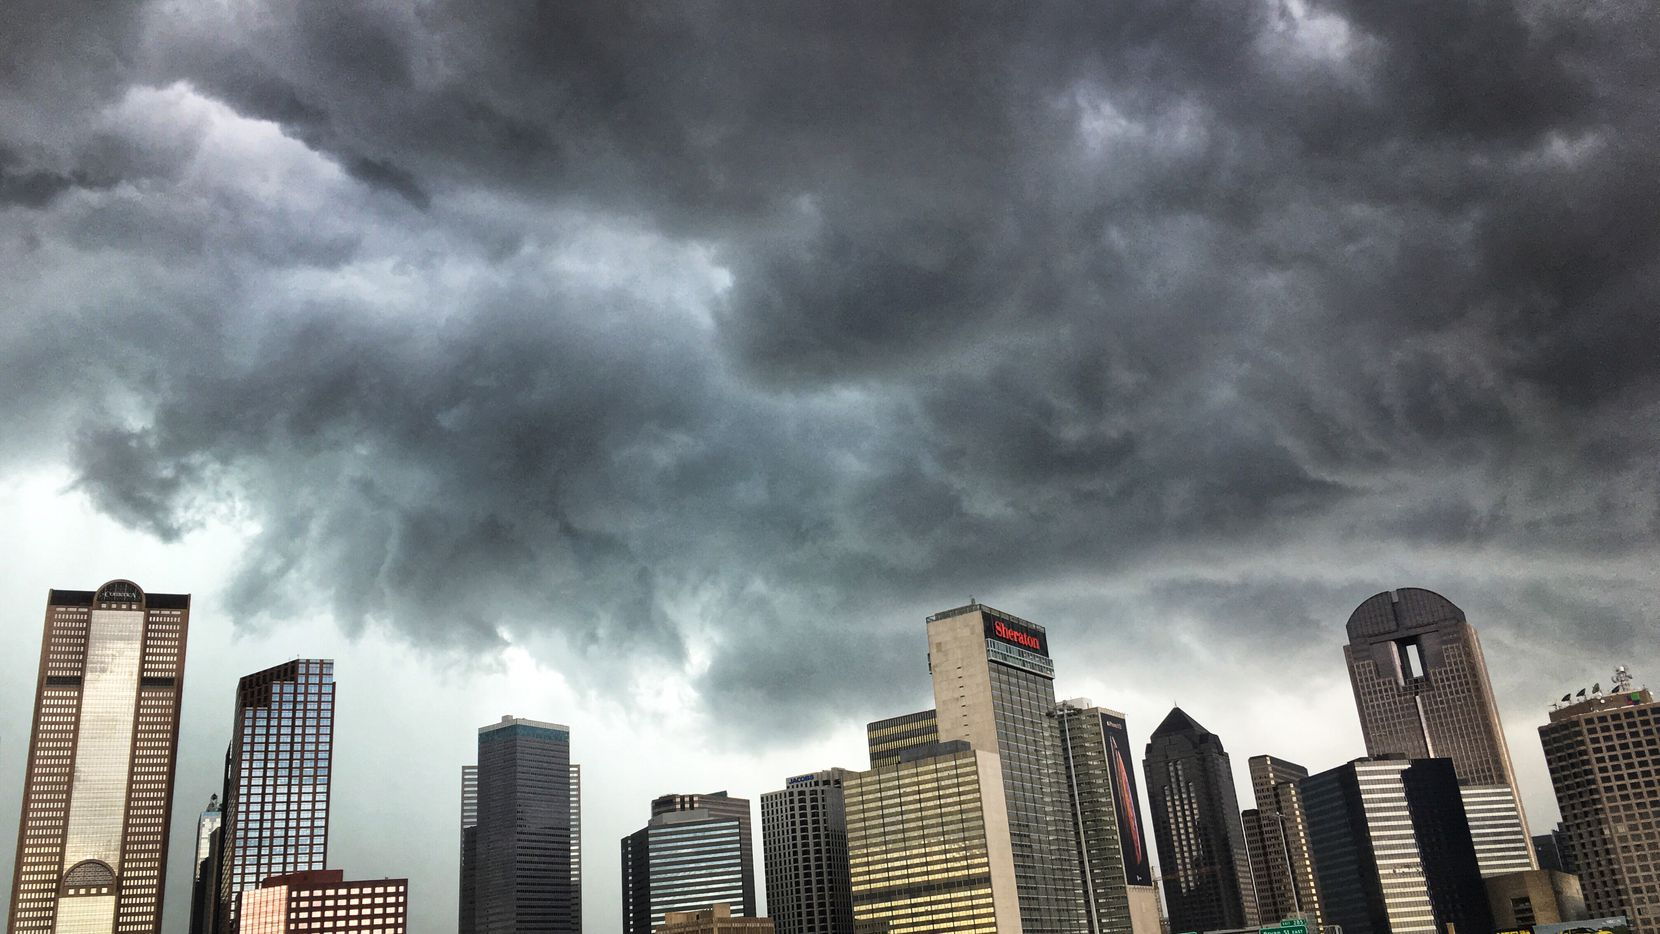 Ominous-looking storm clouds rolled over downtown Dallas on October 8, 2018.